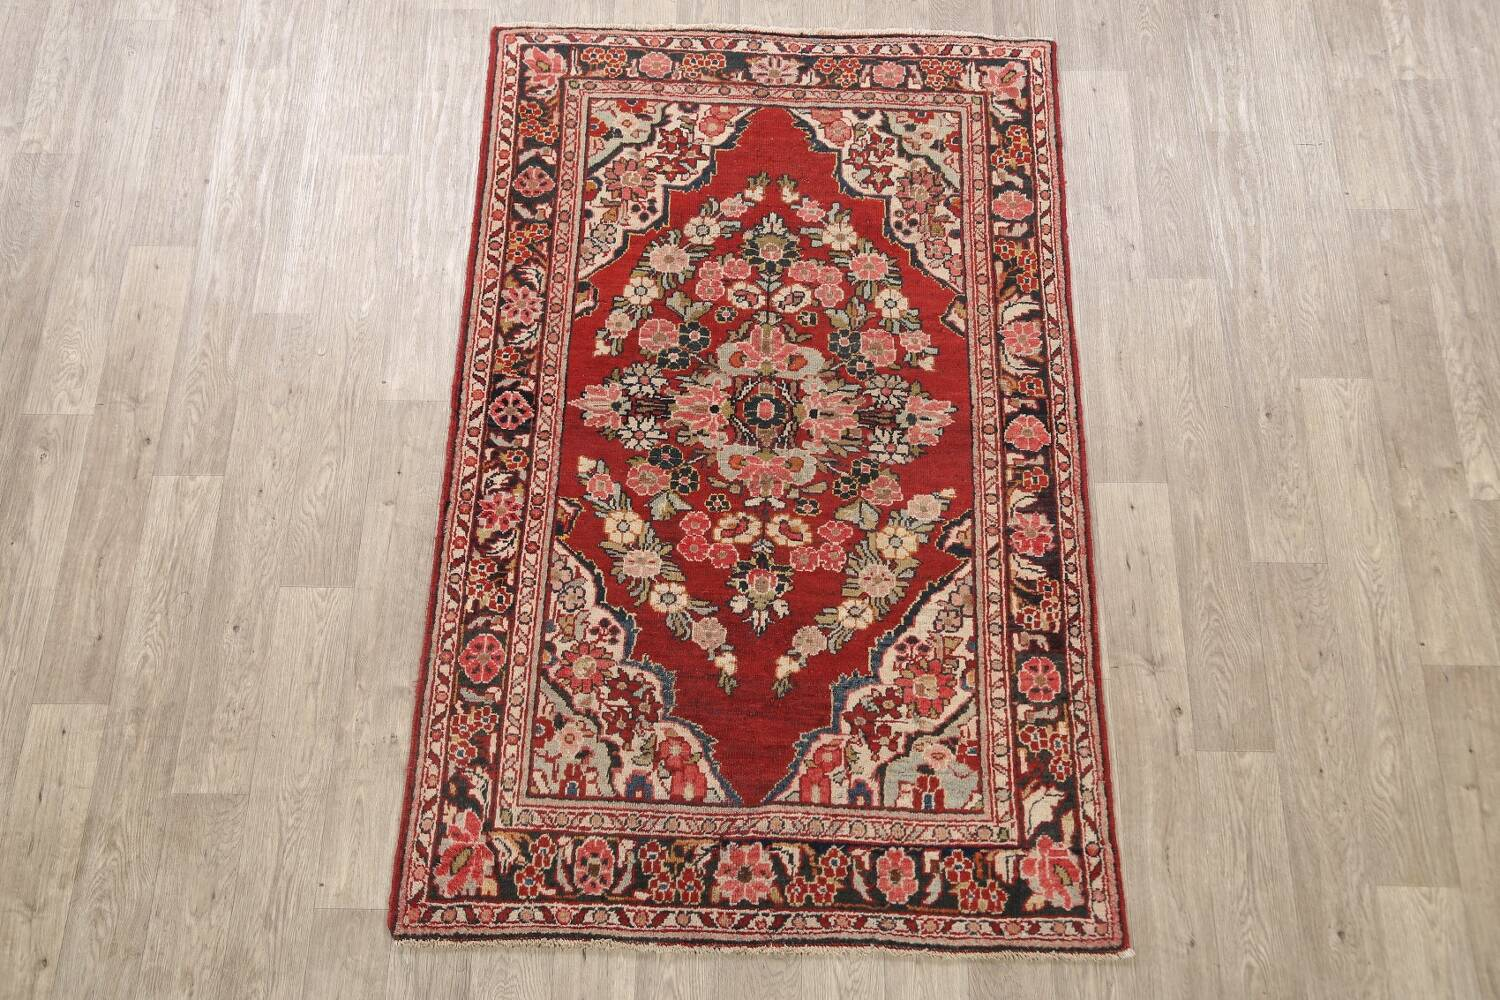 Antique Floral Mahal Persian Area Rug 4x7 image 2